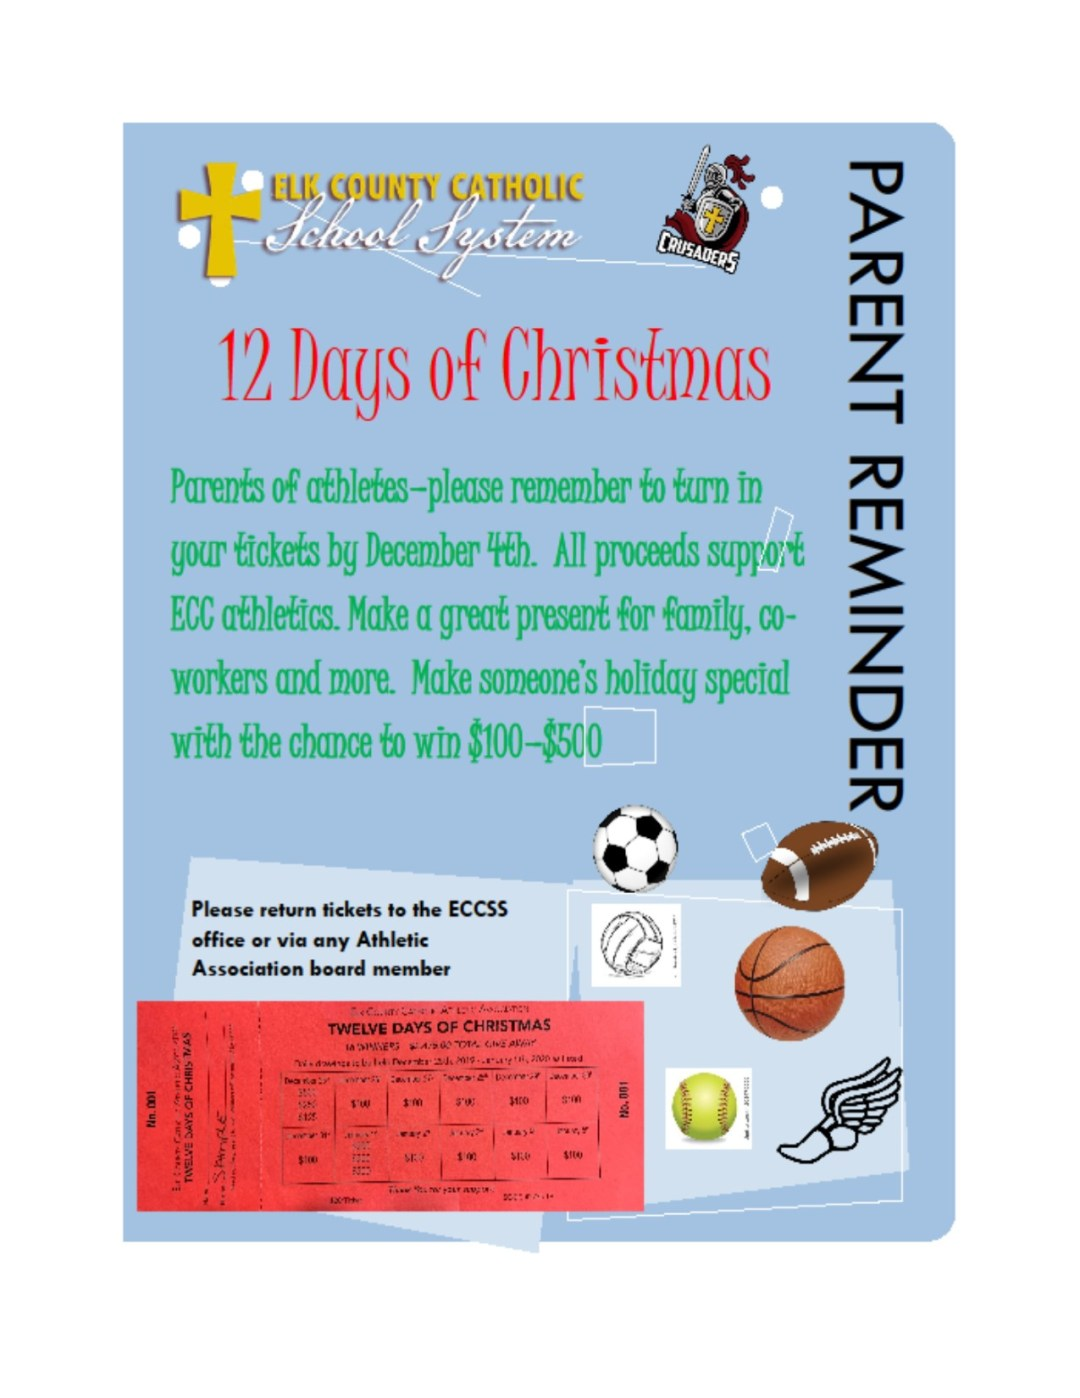 12 Days of Christmas tickets due Wednesday, December 4th